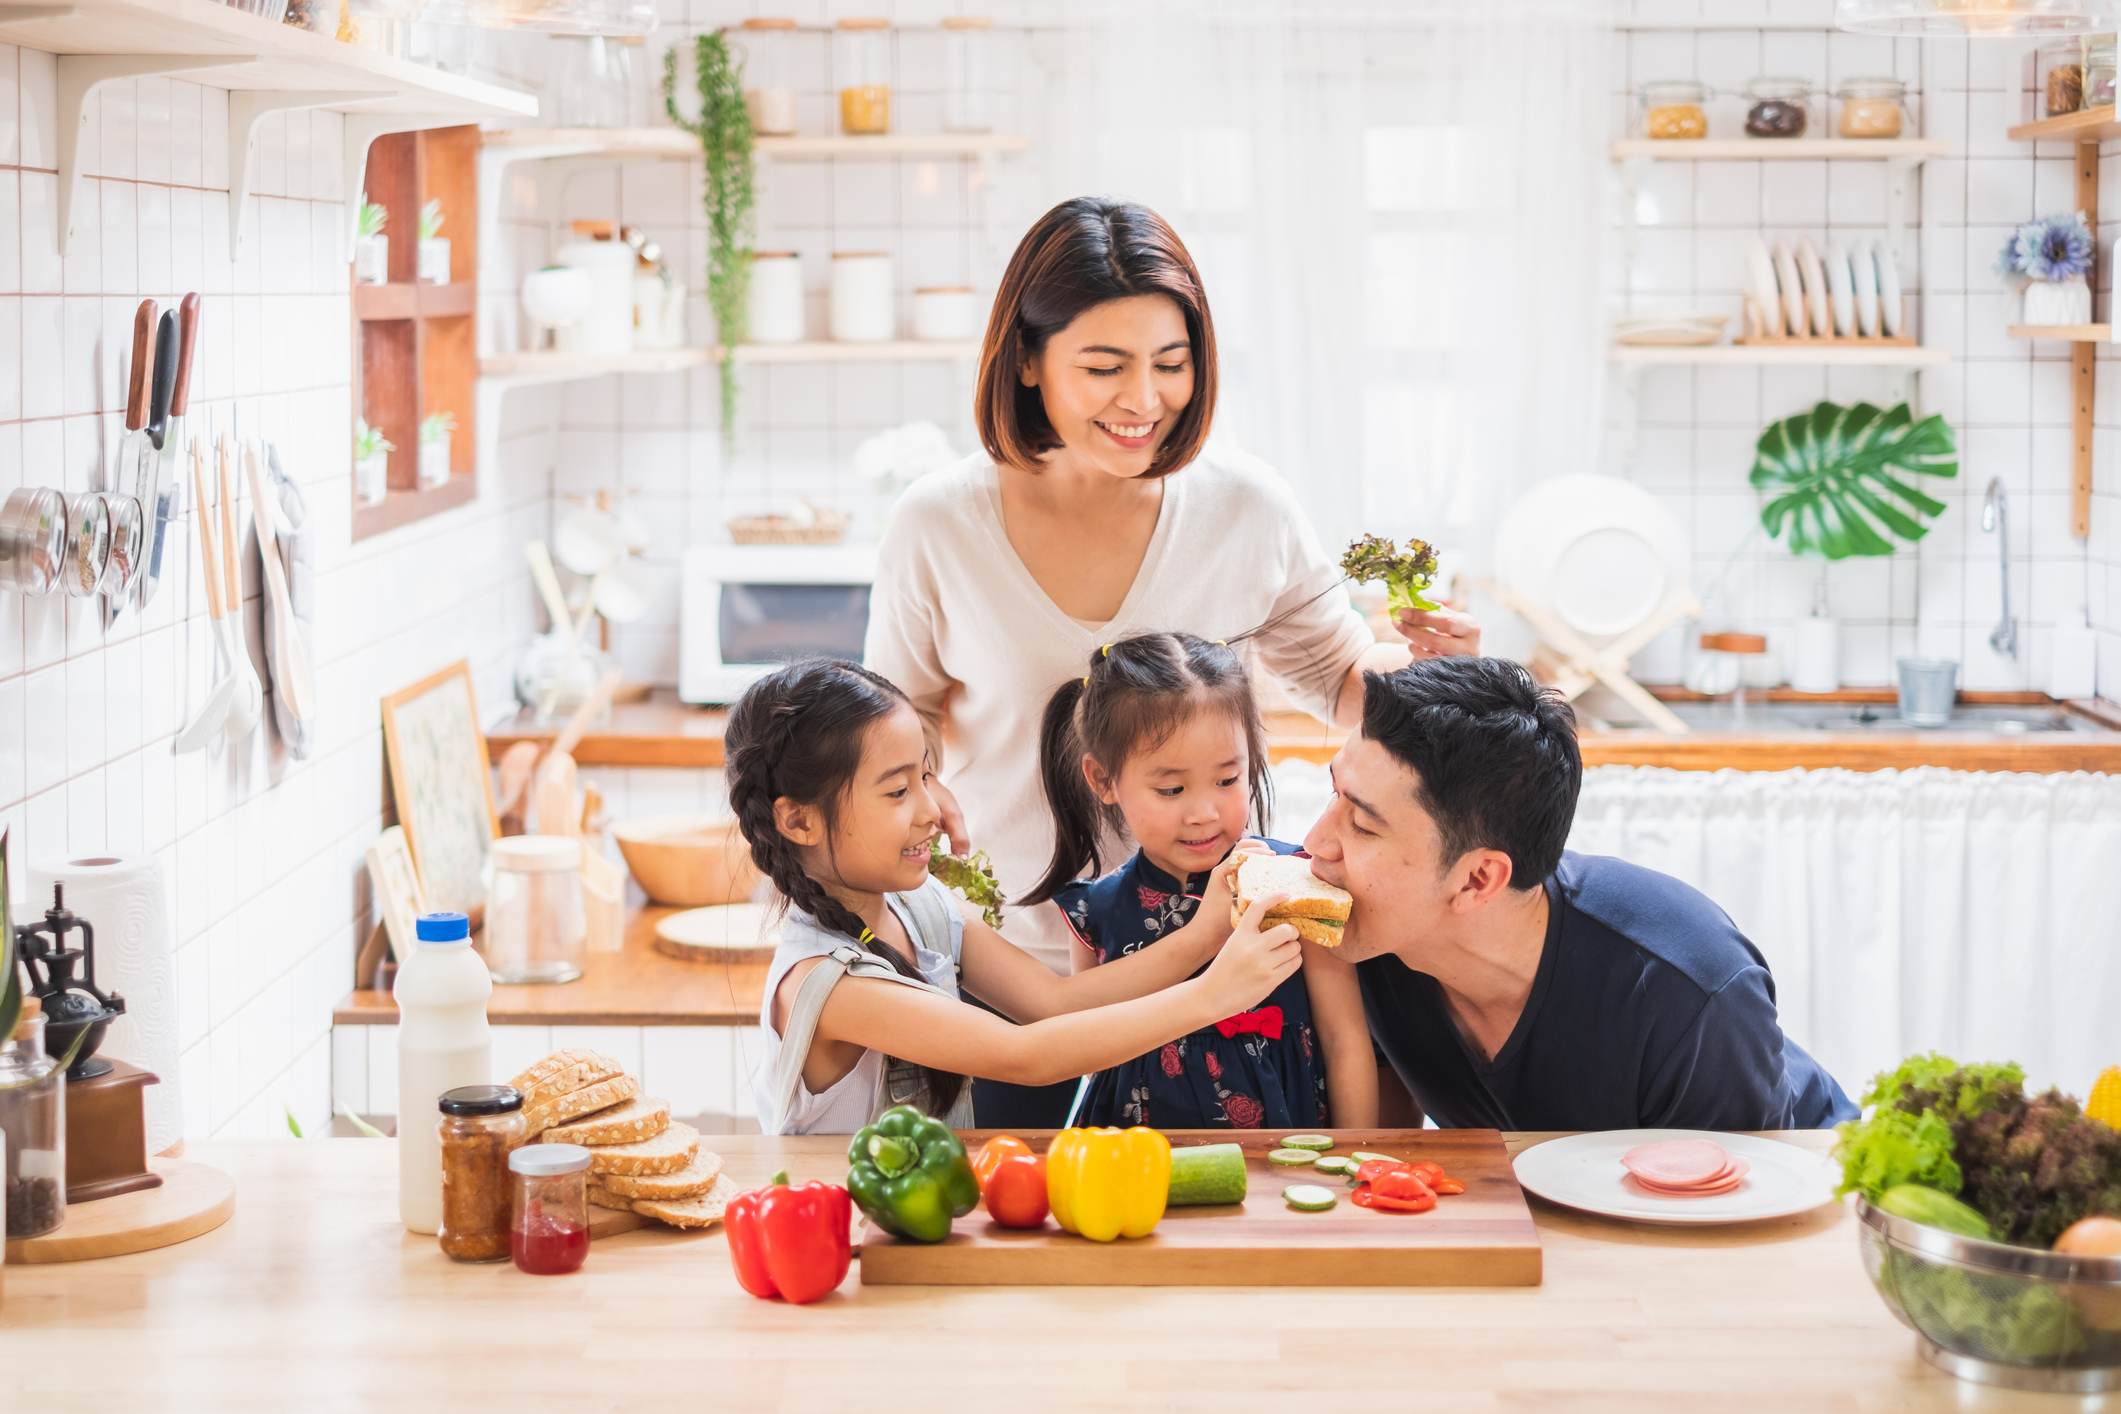 family making sandwiches and feeding their parents